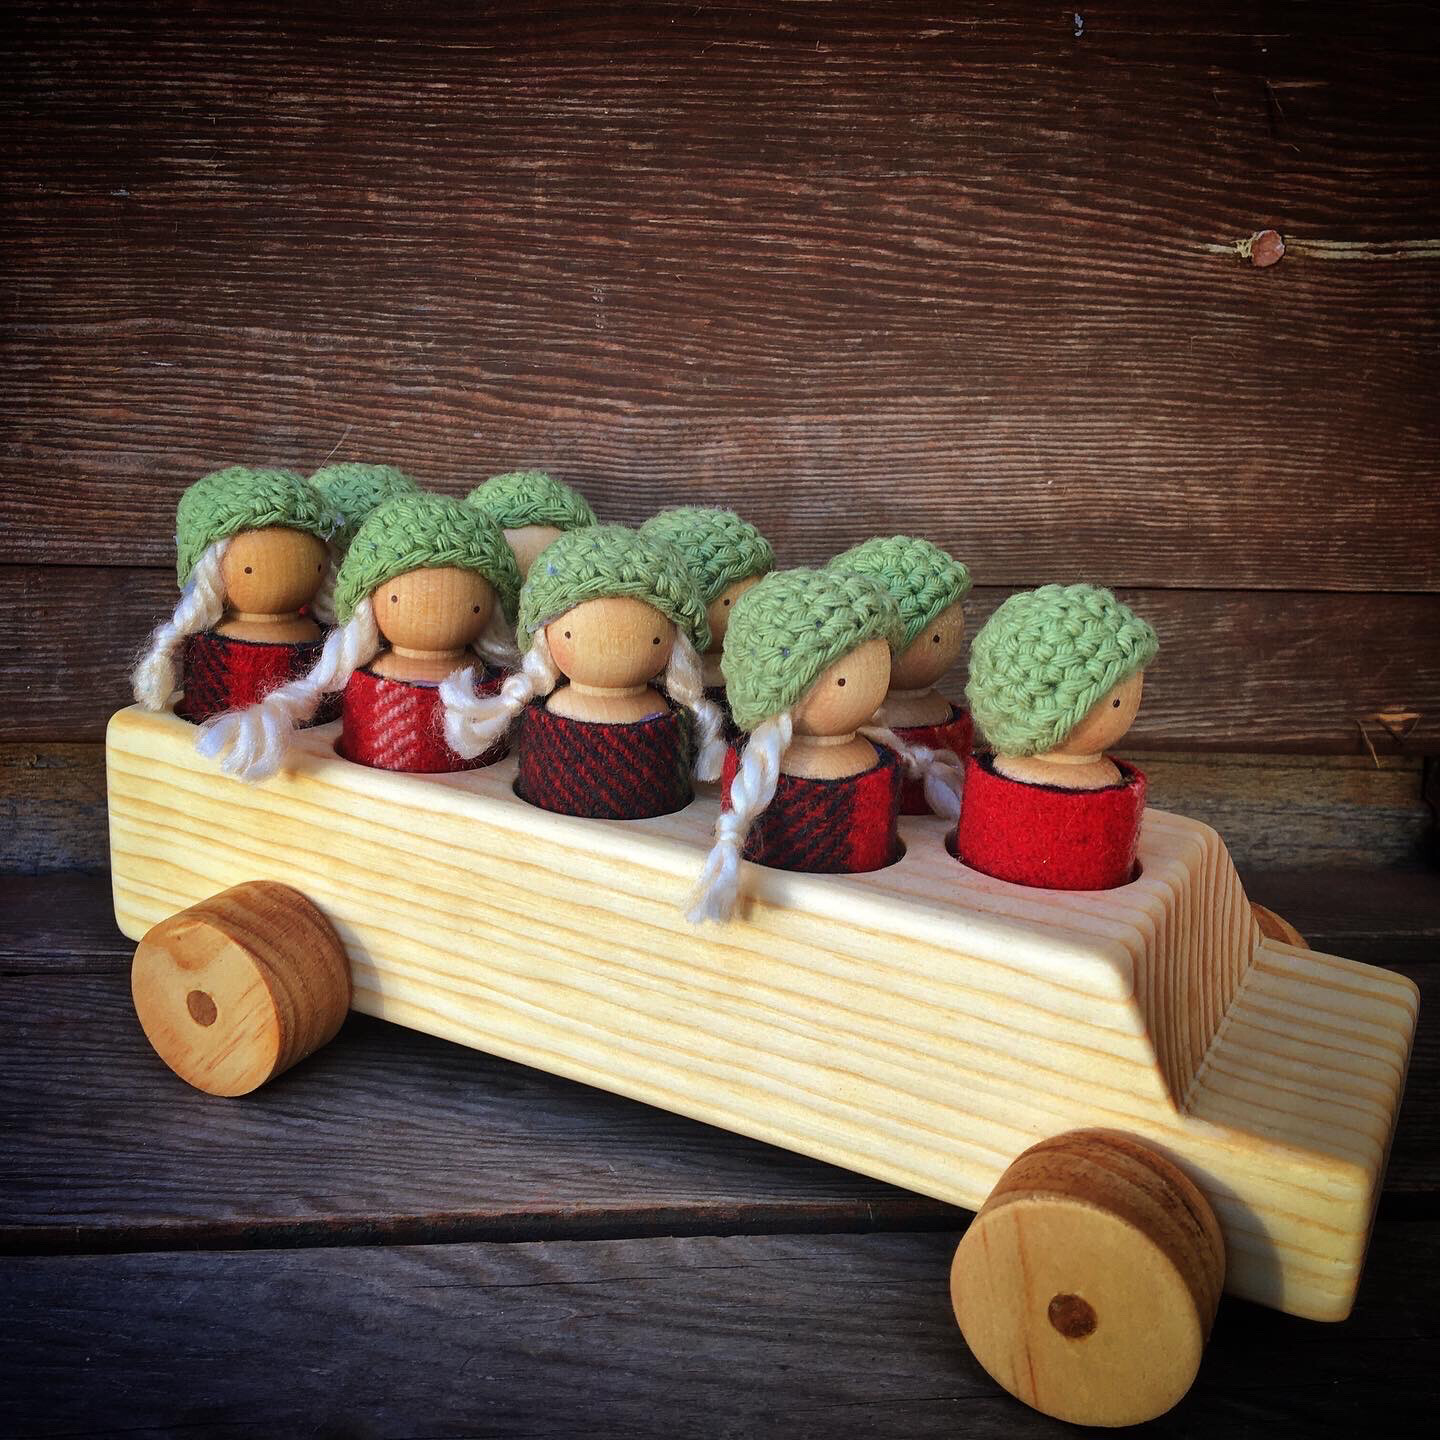 Peg Doll School Bus - Boys And Girls, Red/green